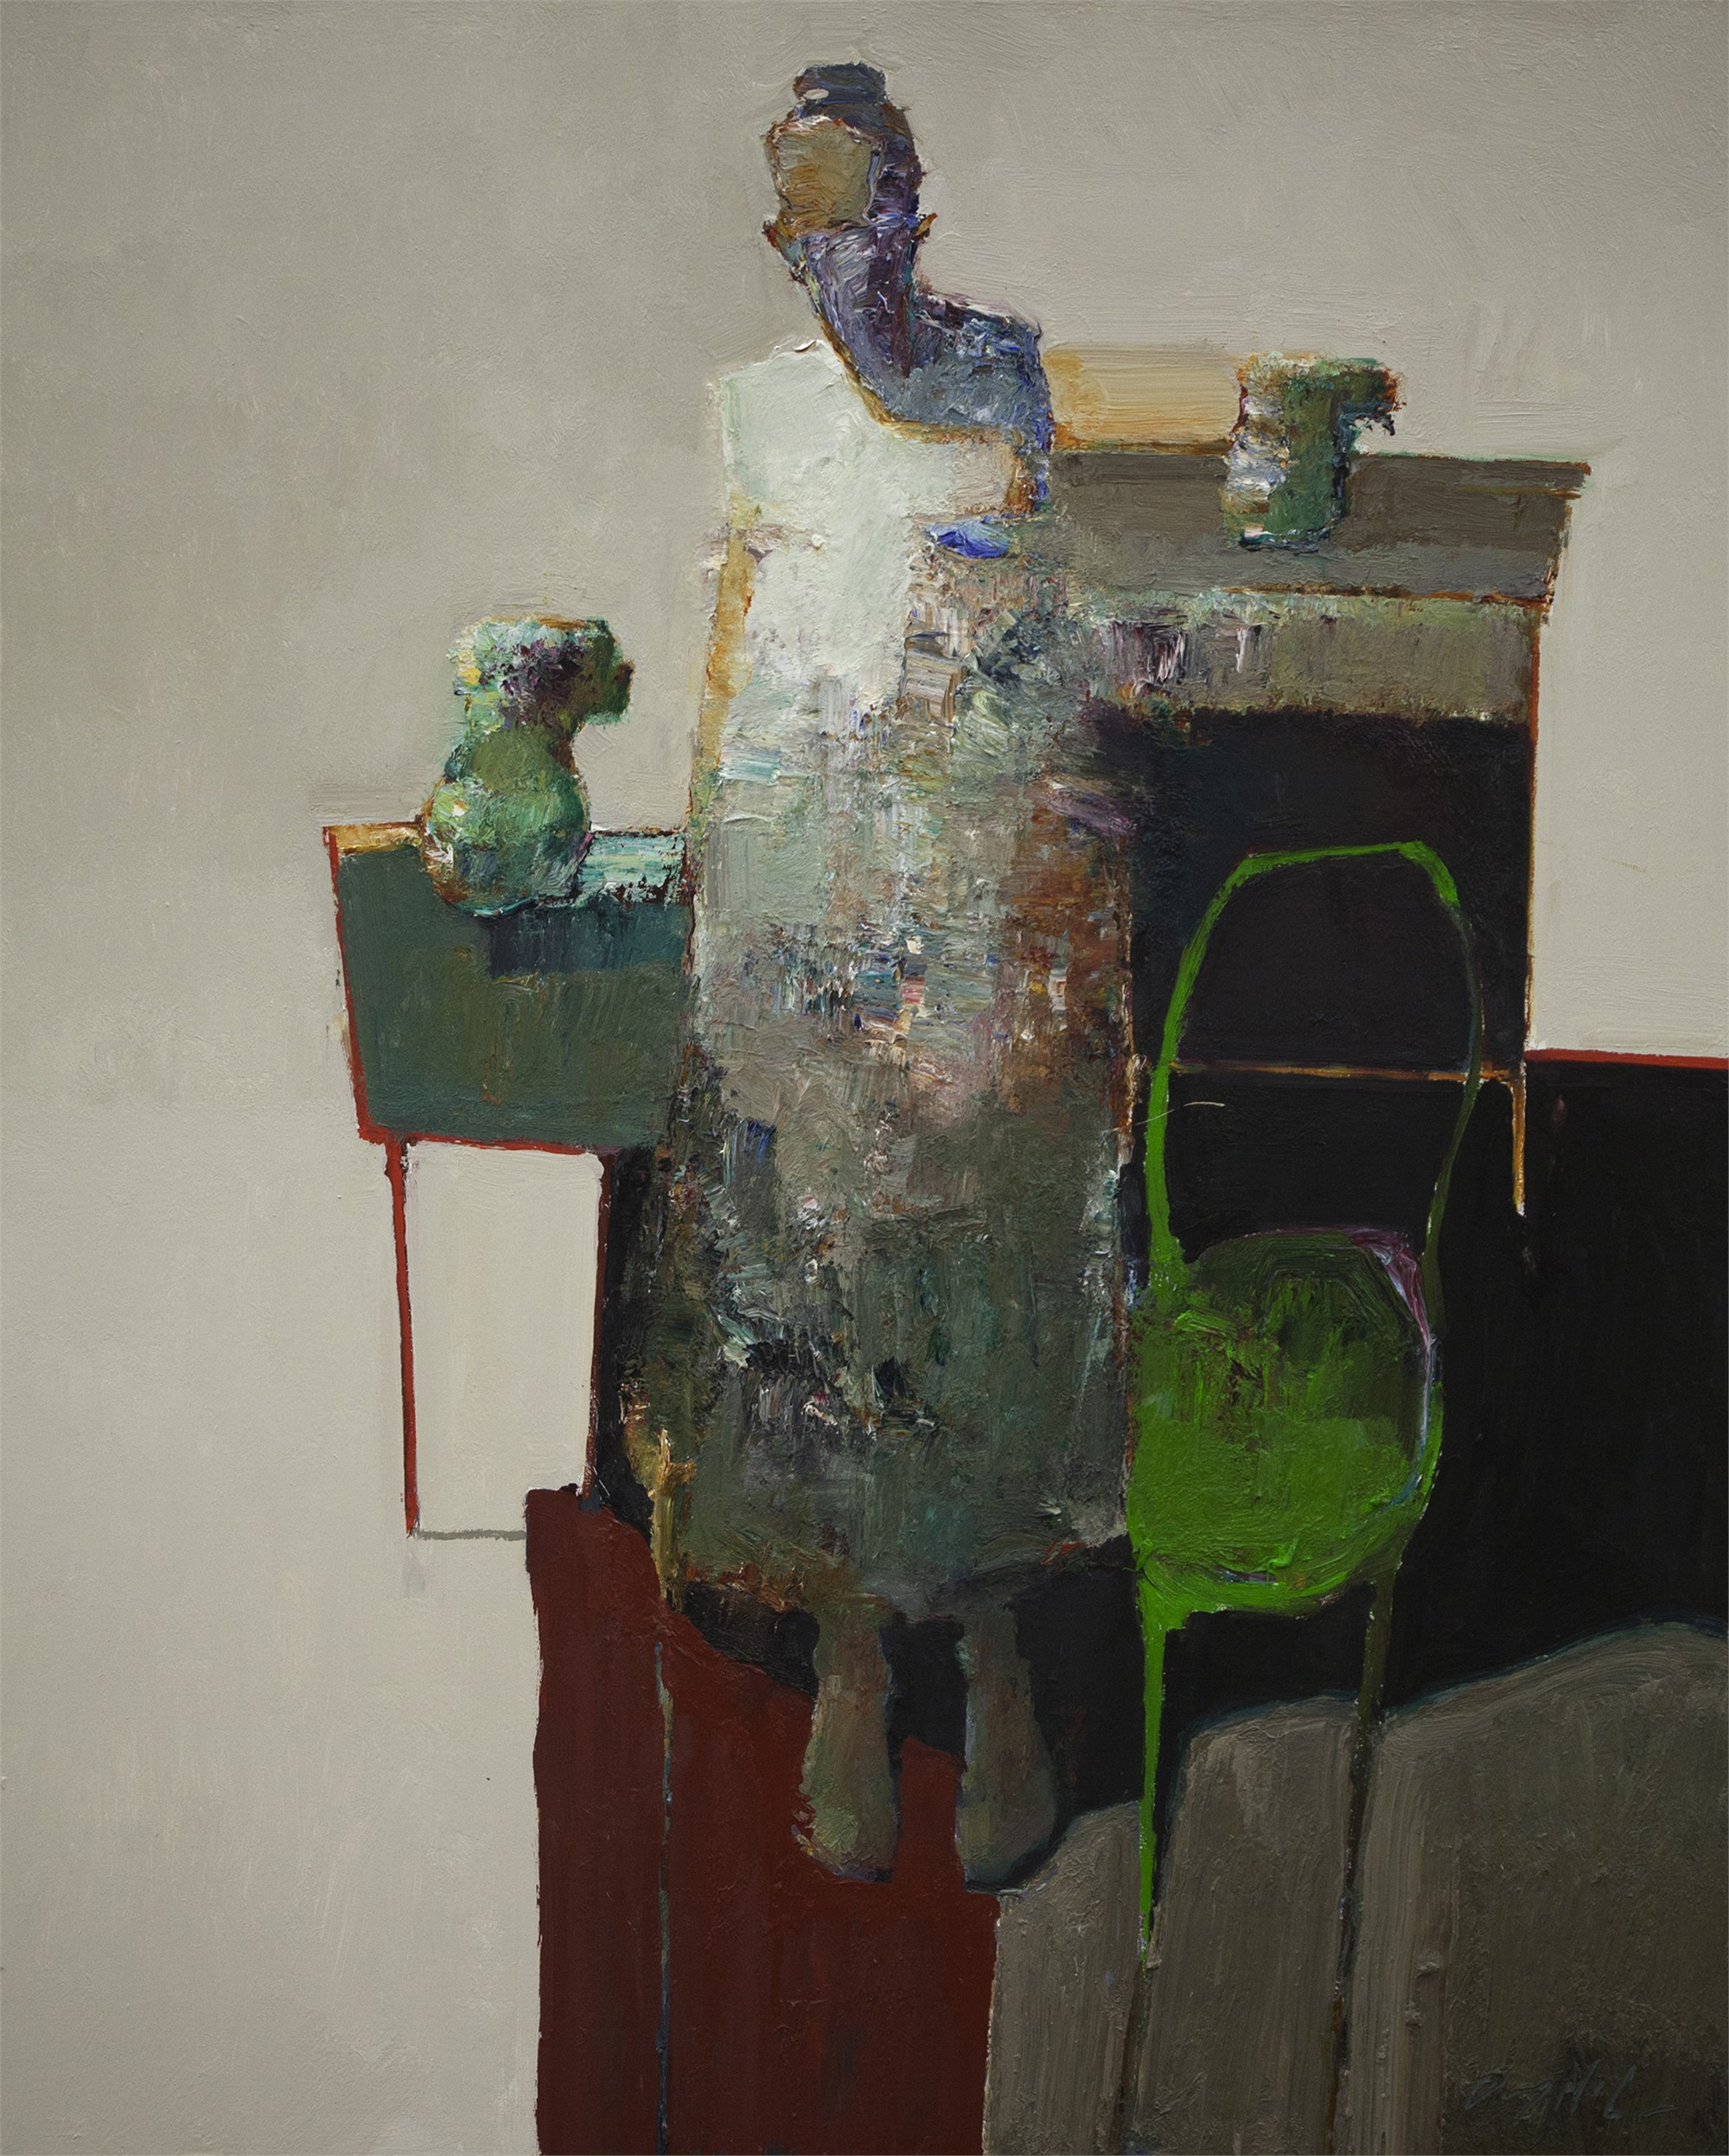 Green Chair by Danny McCaw